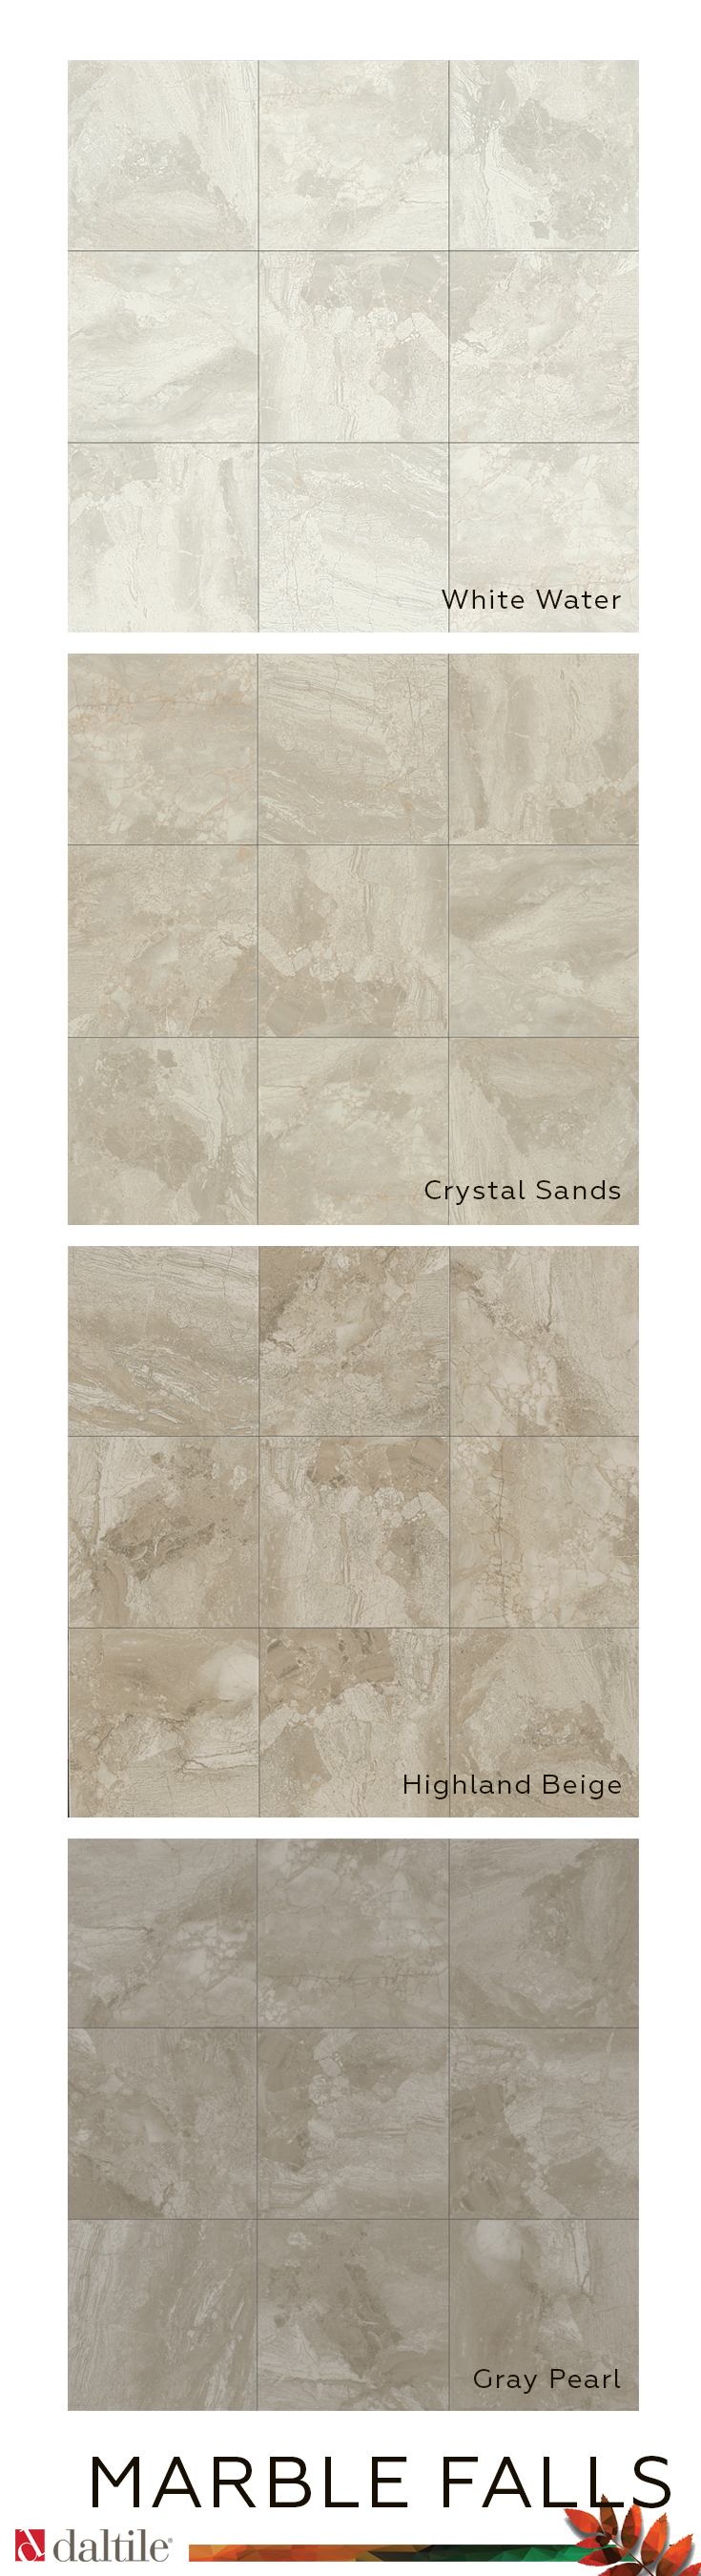 The Classic Elegance Of Marble Falls Glazed Ceramic Tile Rivals The